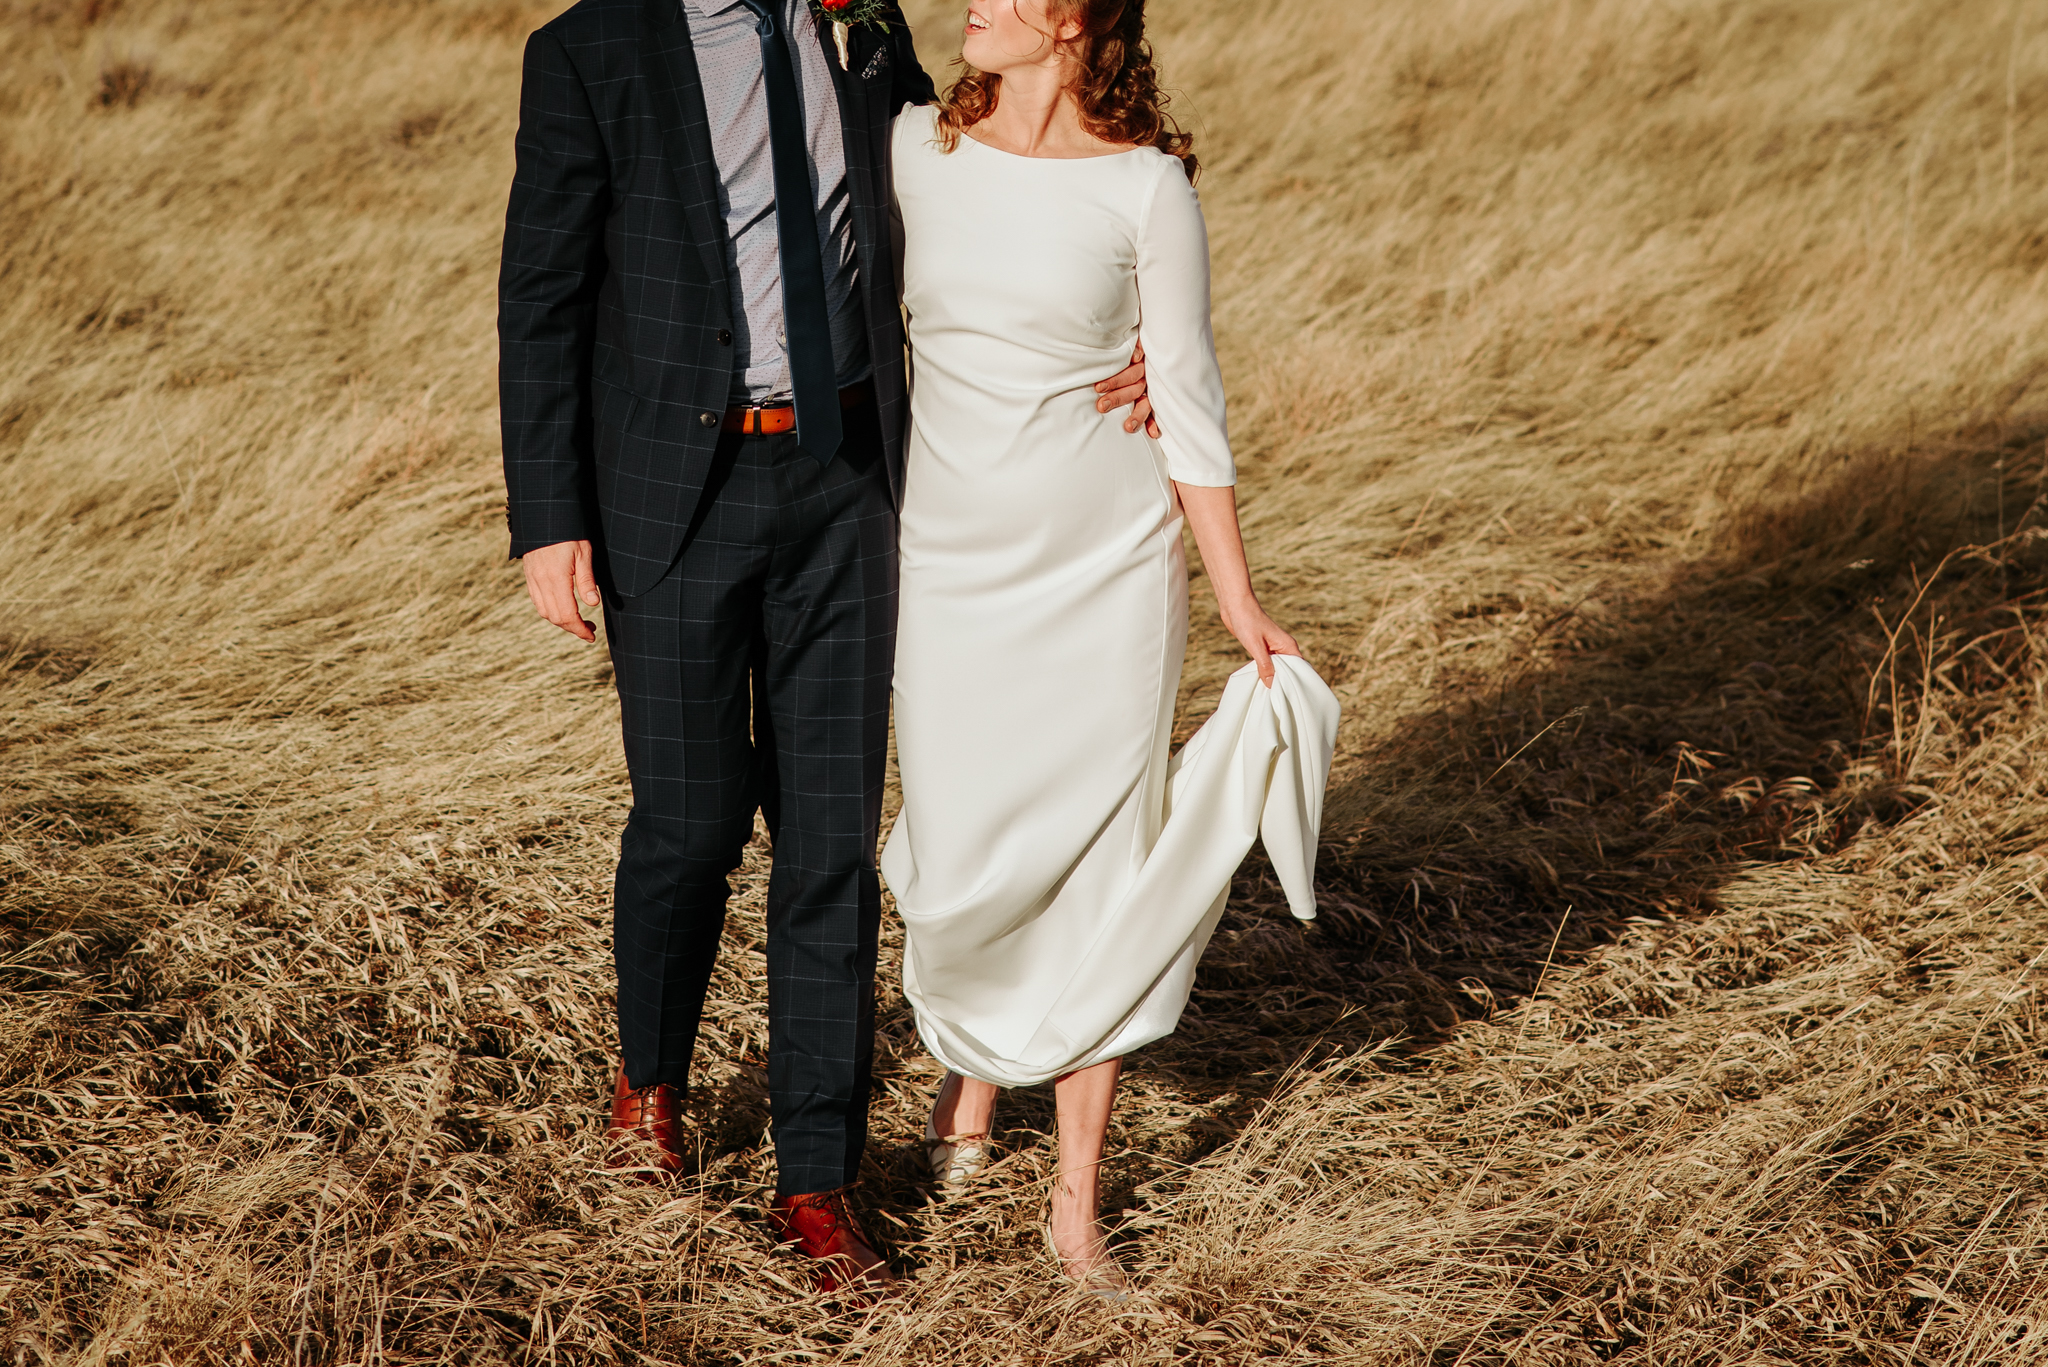 lethbridge-wedding-photographer-love-and-be-loved-photography-kris-amy-paradise-canyon-image-picture-photo-15.jpg